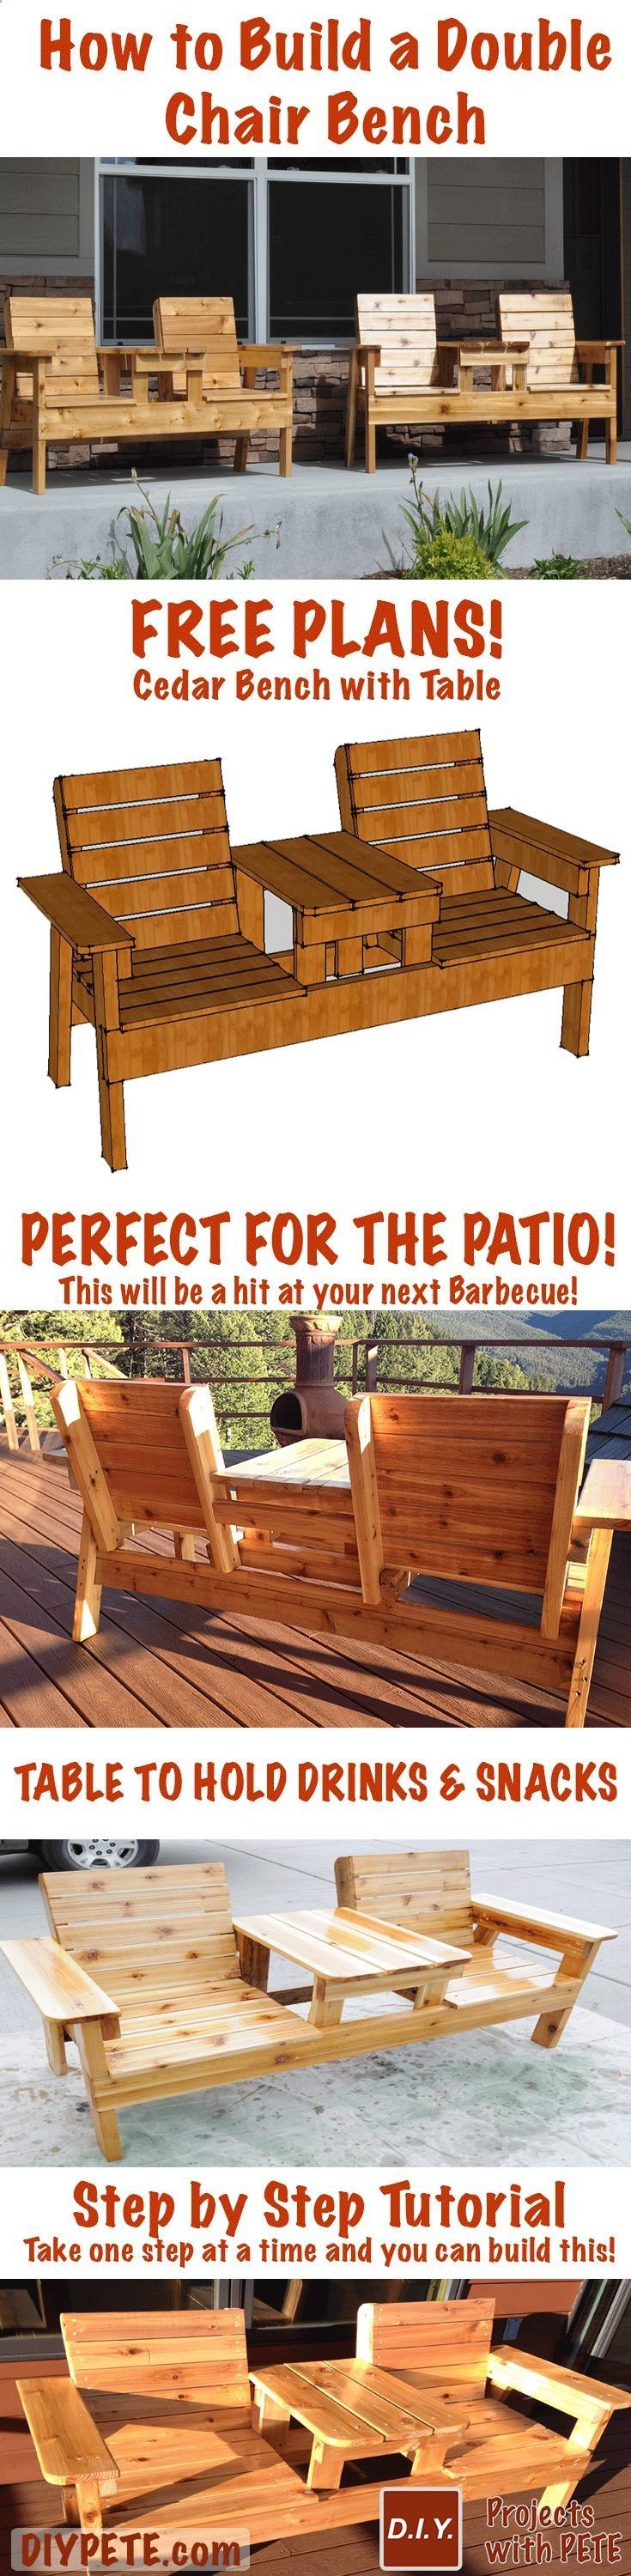 Wood Profits - Build your own Double Bench Chair with FREE plans and a 15  minute video tutorial that breaks this project down into easy steps so you  can ...